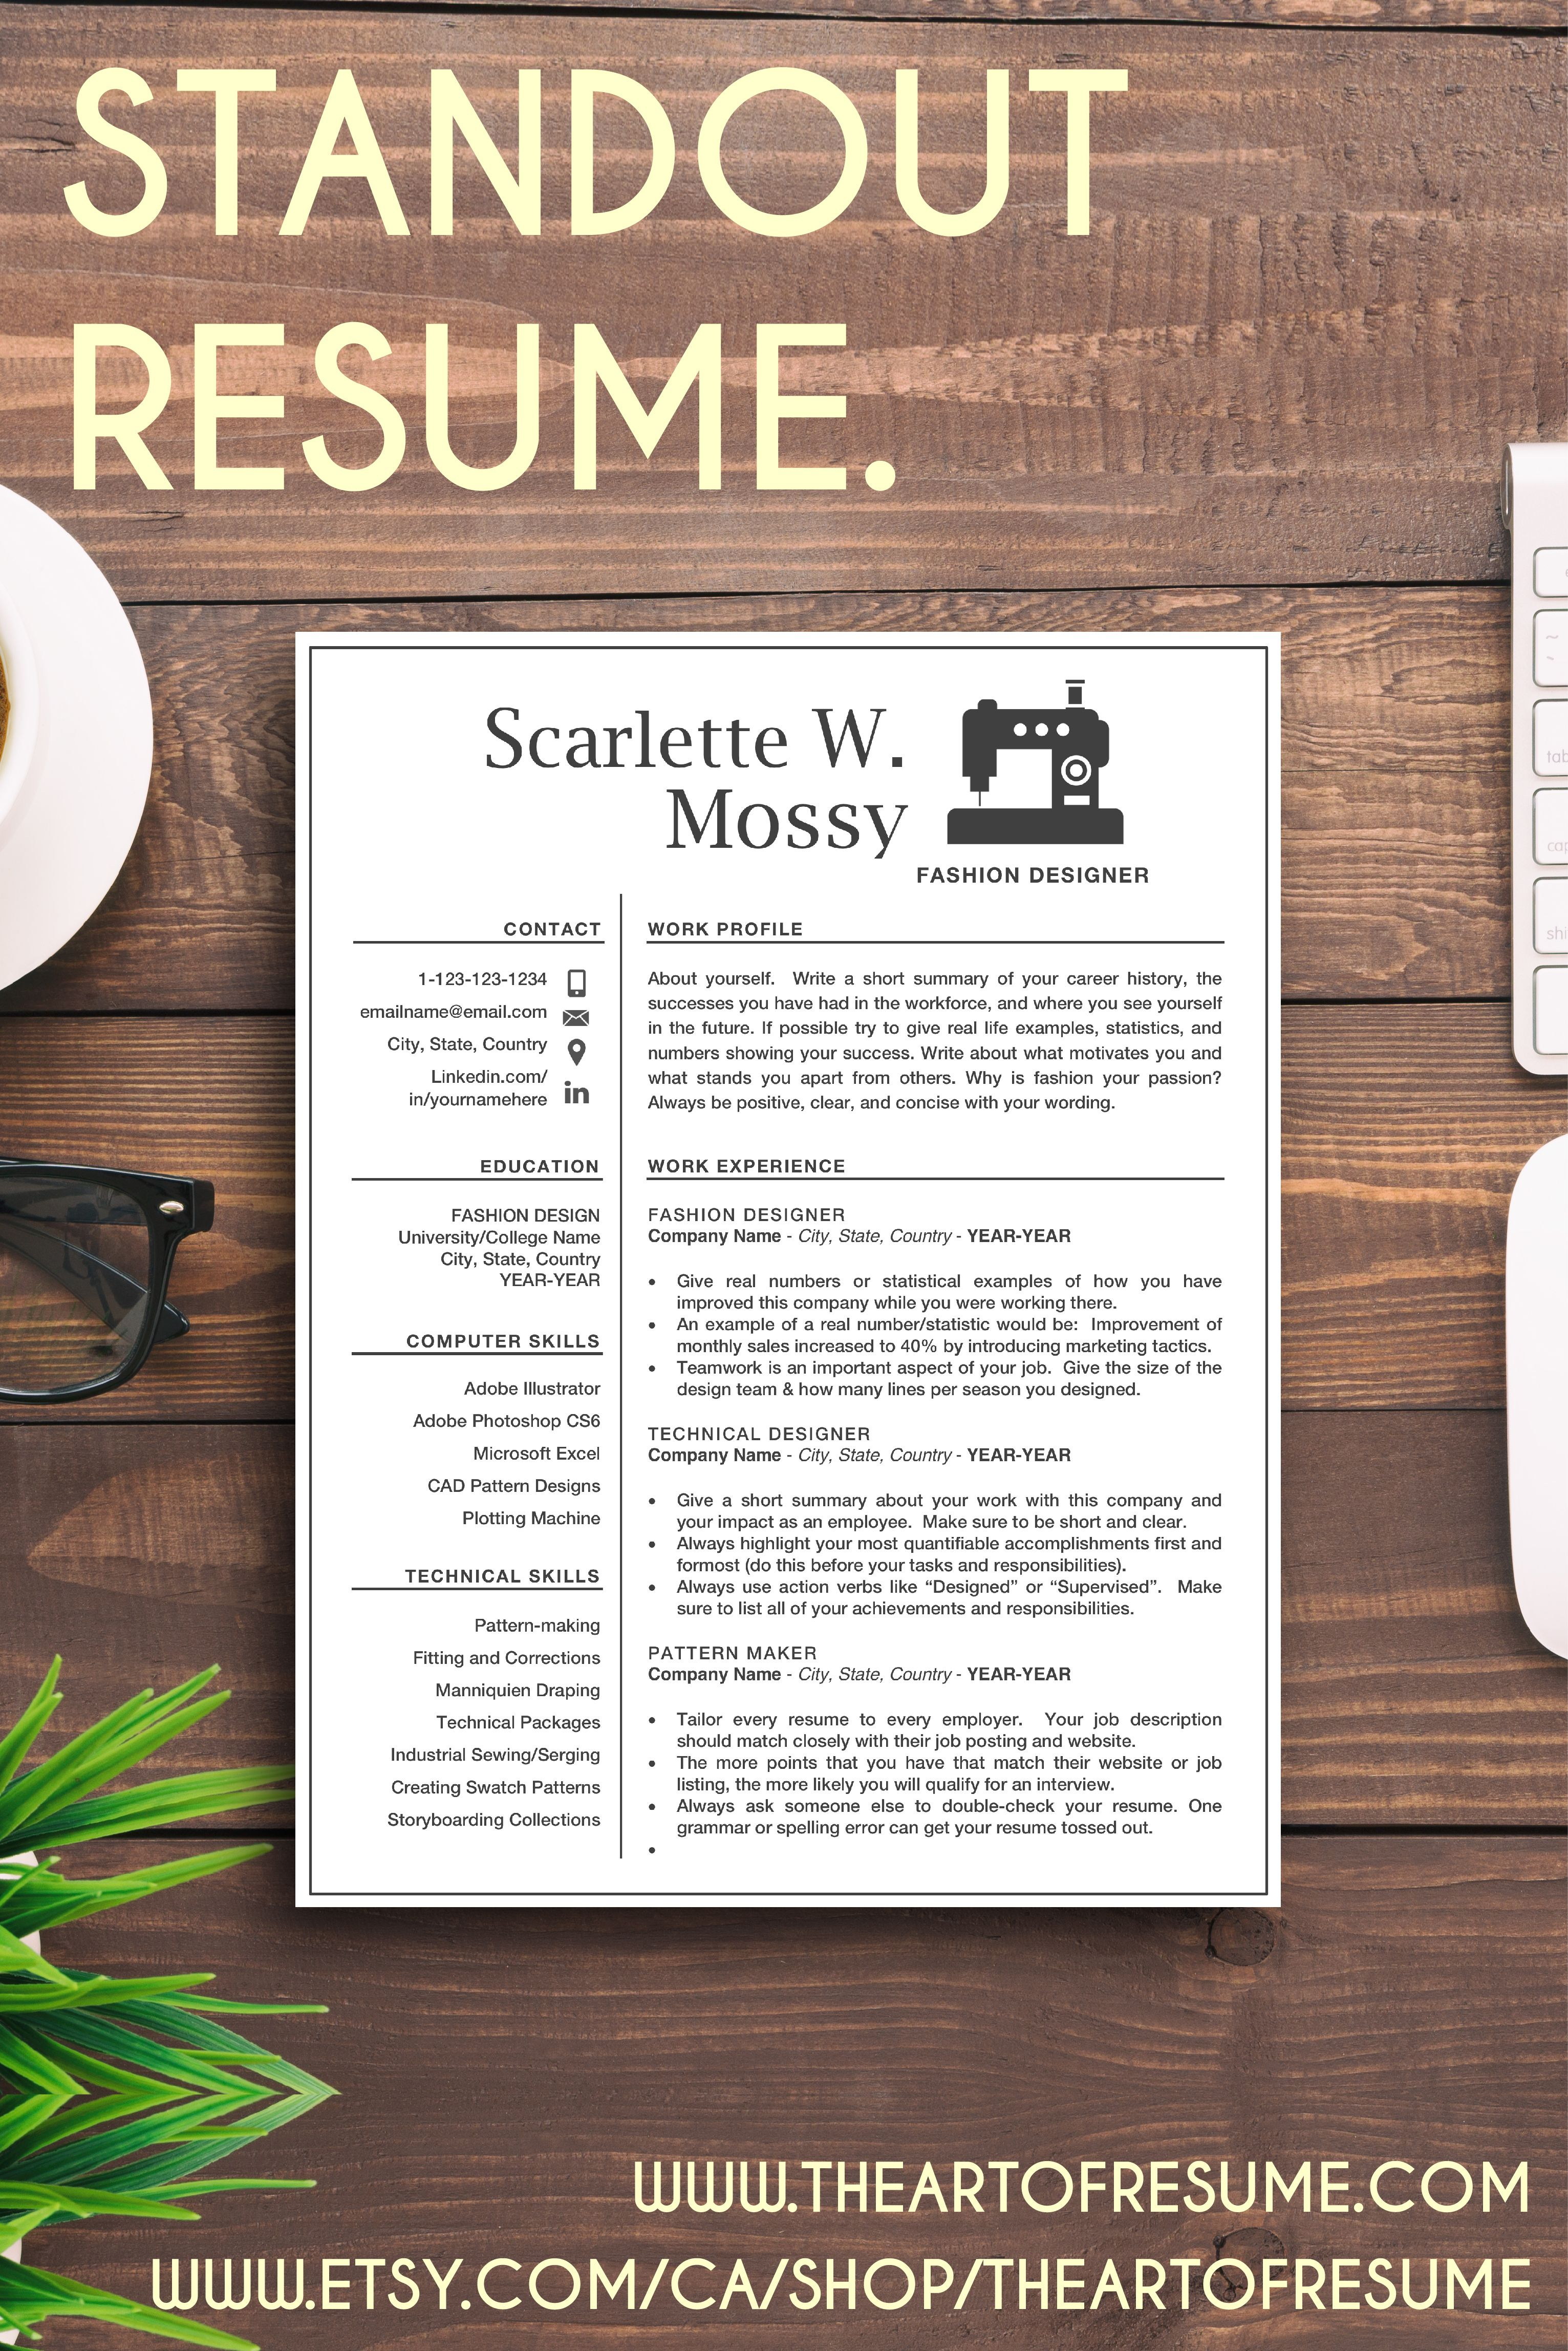 Resume Template Made For Fashion Design Seamstress Etc But Can Be Customized For Any Career Editable In Ms Word This Cv Bundle 1 2 Or 3 Pages With Cover